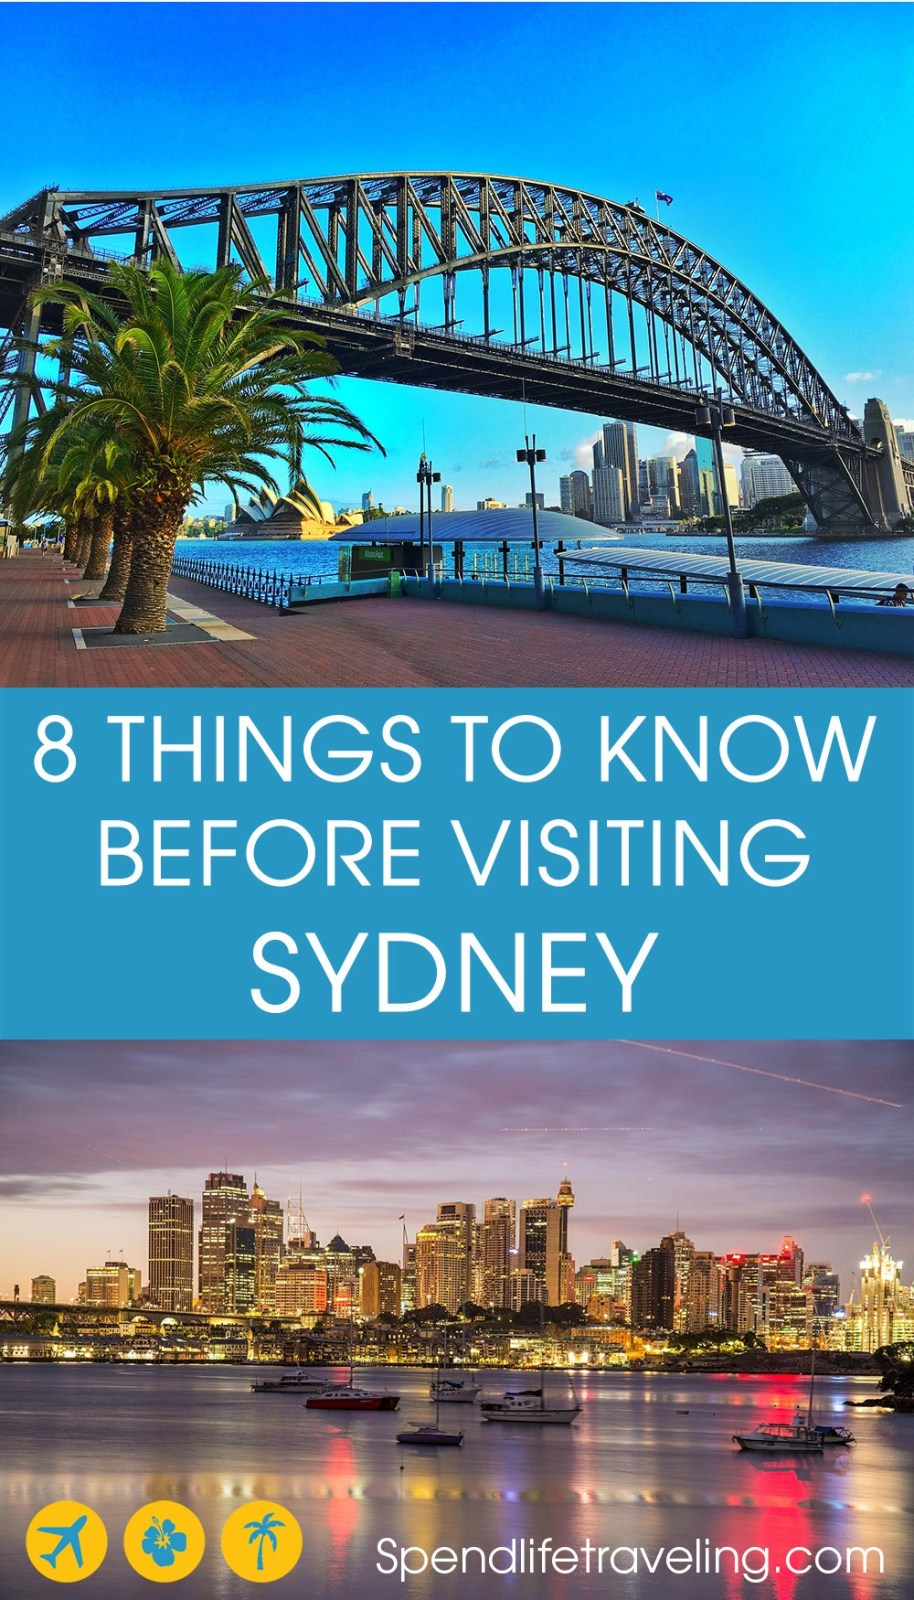 8 Things You should know before traveling to #Sydney, Australia #cityguide #citybreak